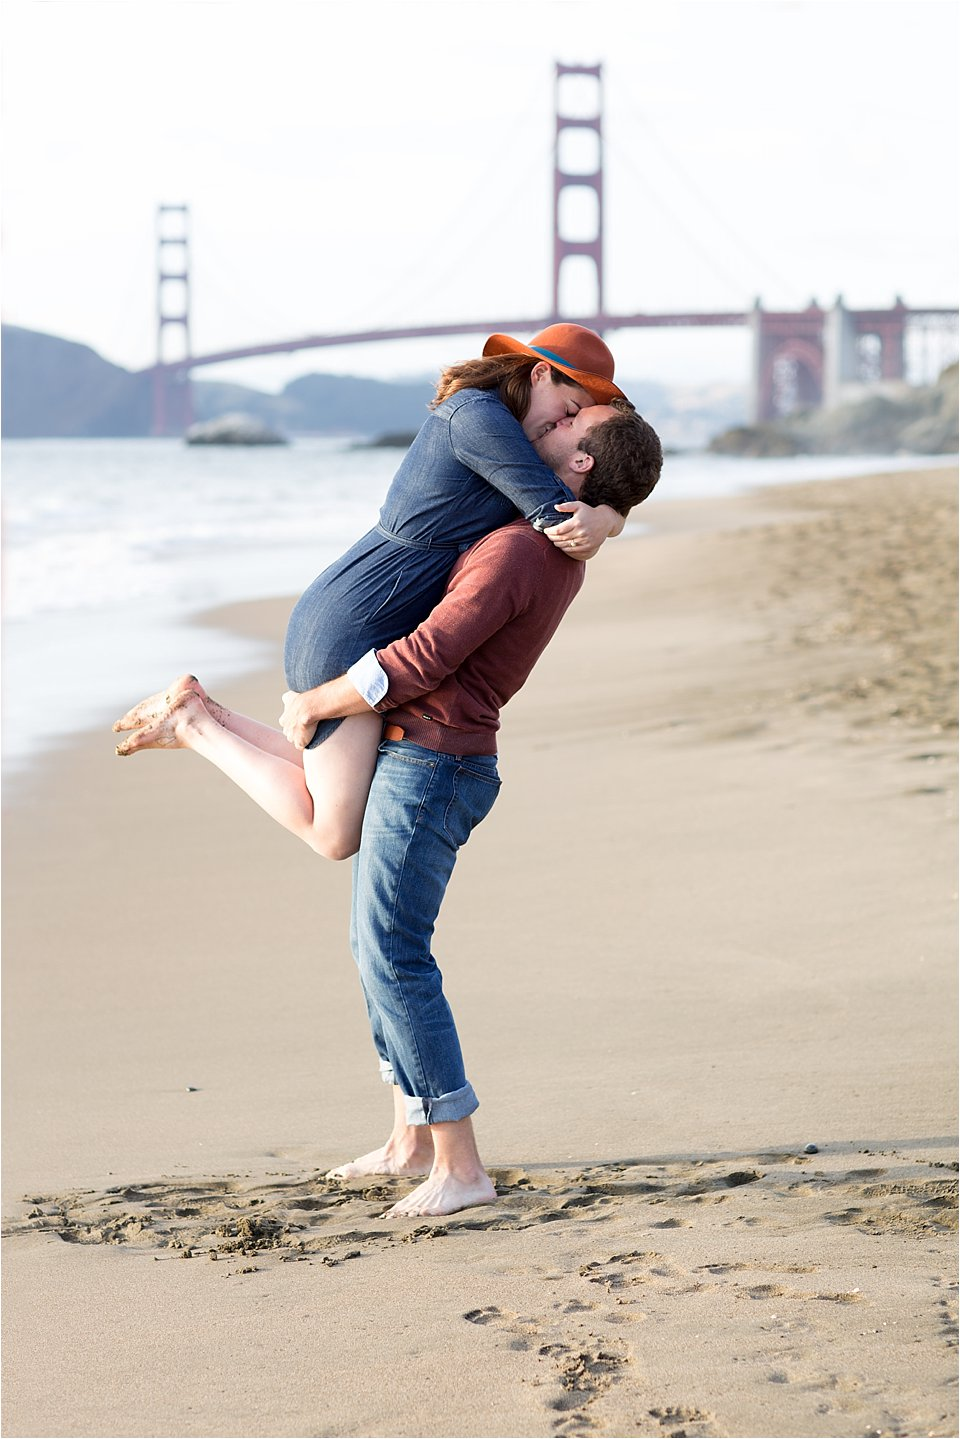 Joyful Engaged Couple on Beach With View of Golden Gate Bridge